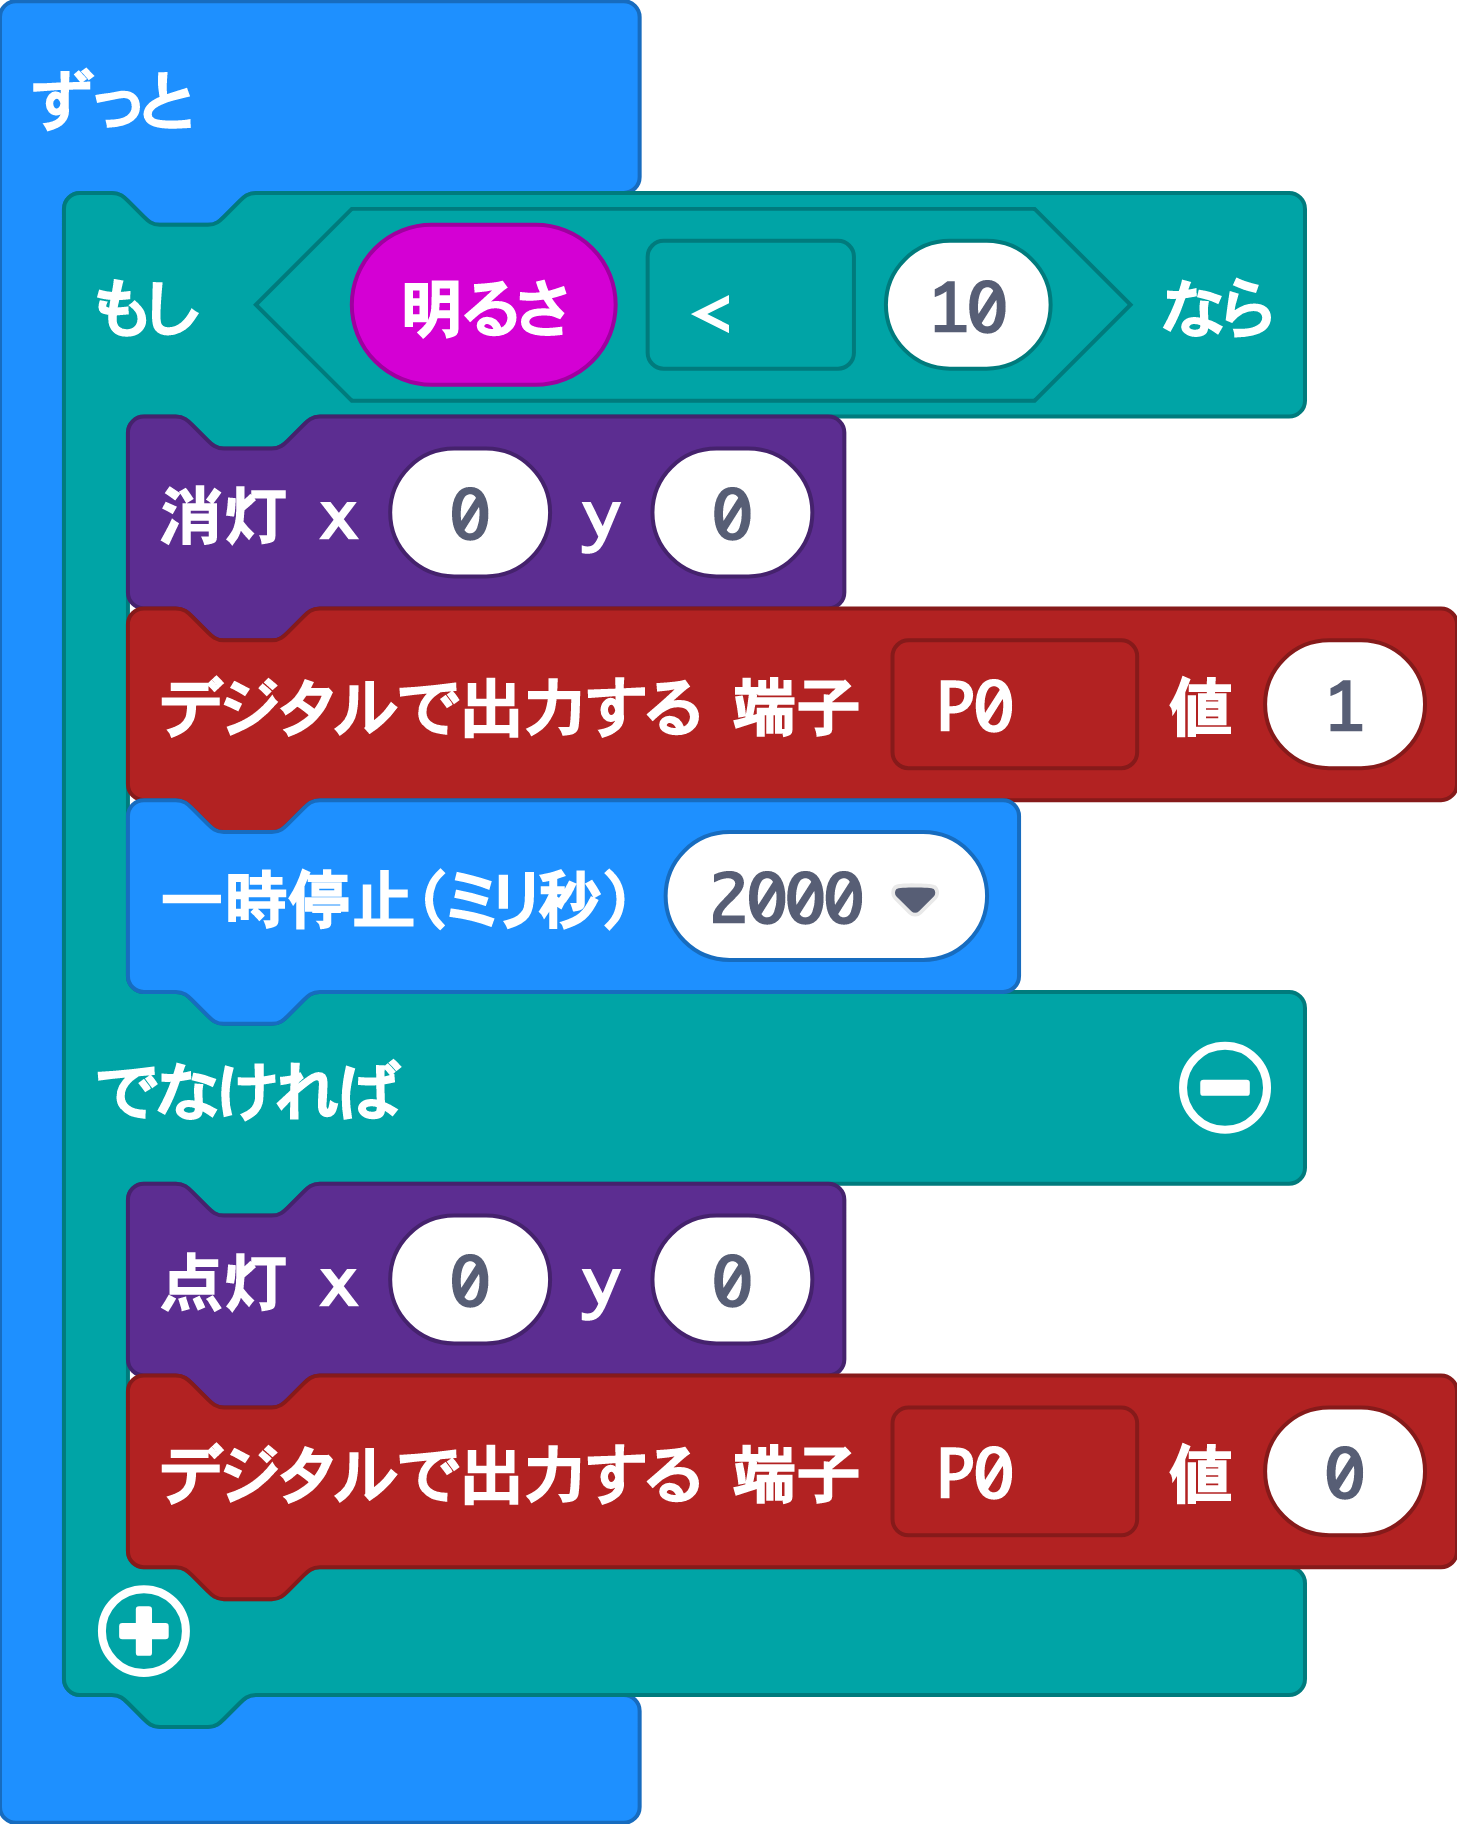 microbit-画面コピー (9).png